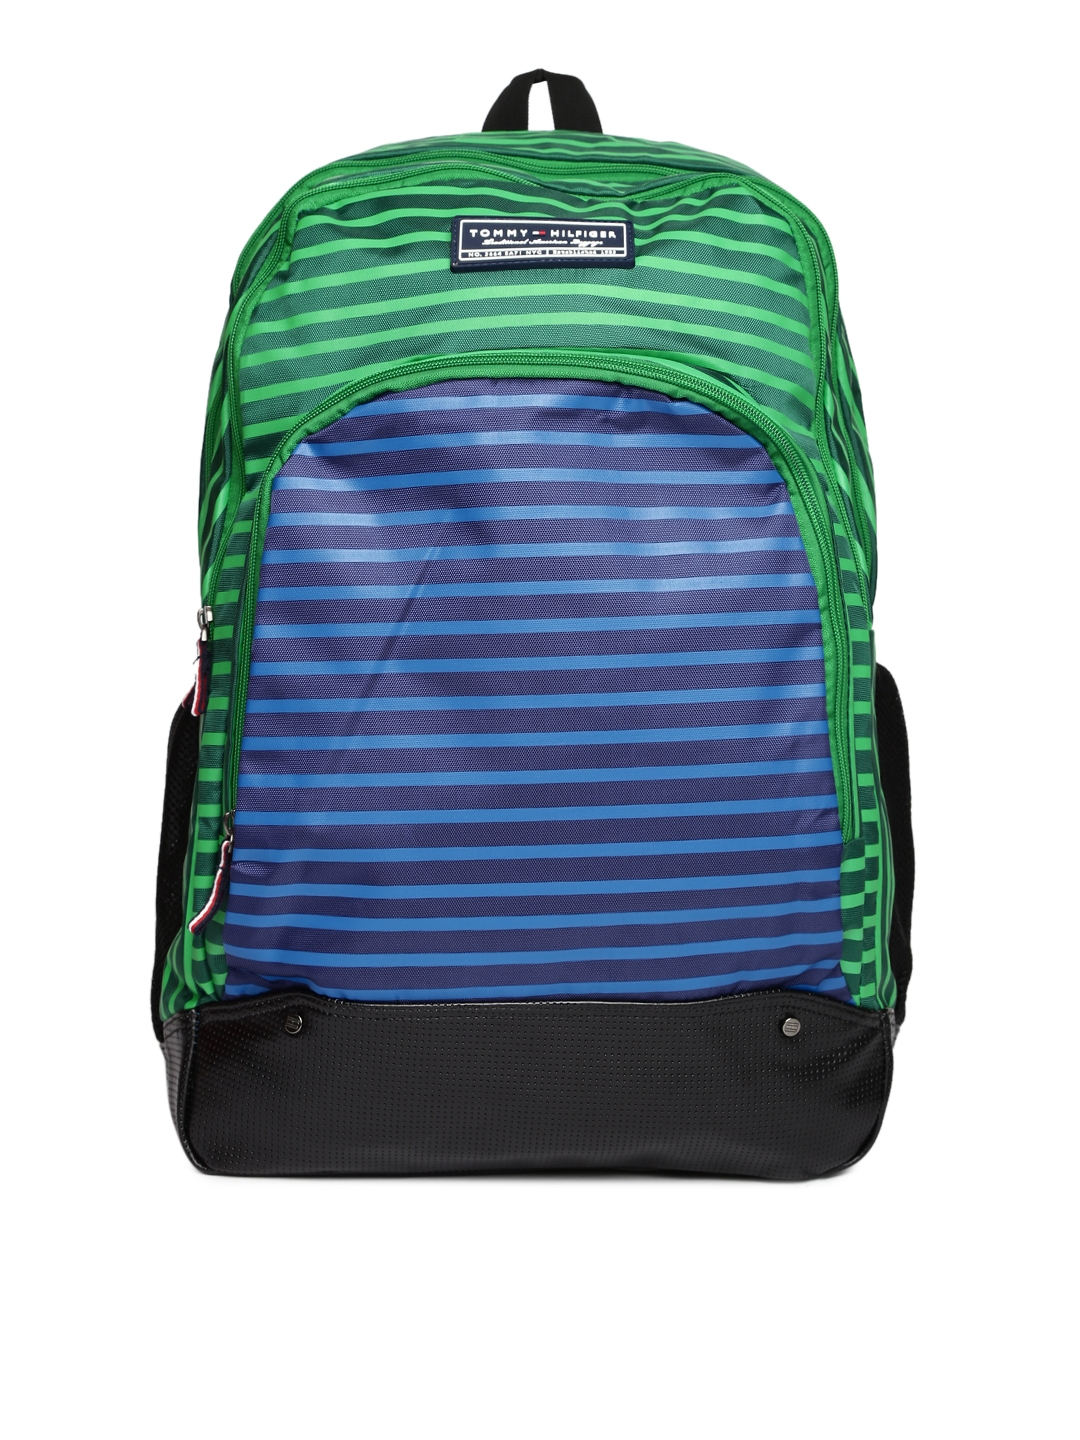 731651eec94 Buy Tommy Hilfiger Unisex Green & Blue Striped OLYMPUS'17 Backpack -  Backpacks for Unisex 1910845 | Myntra